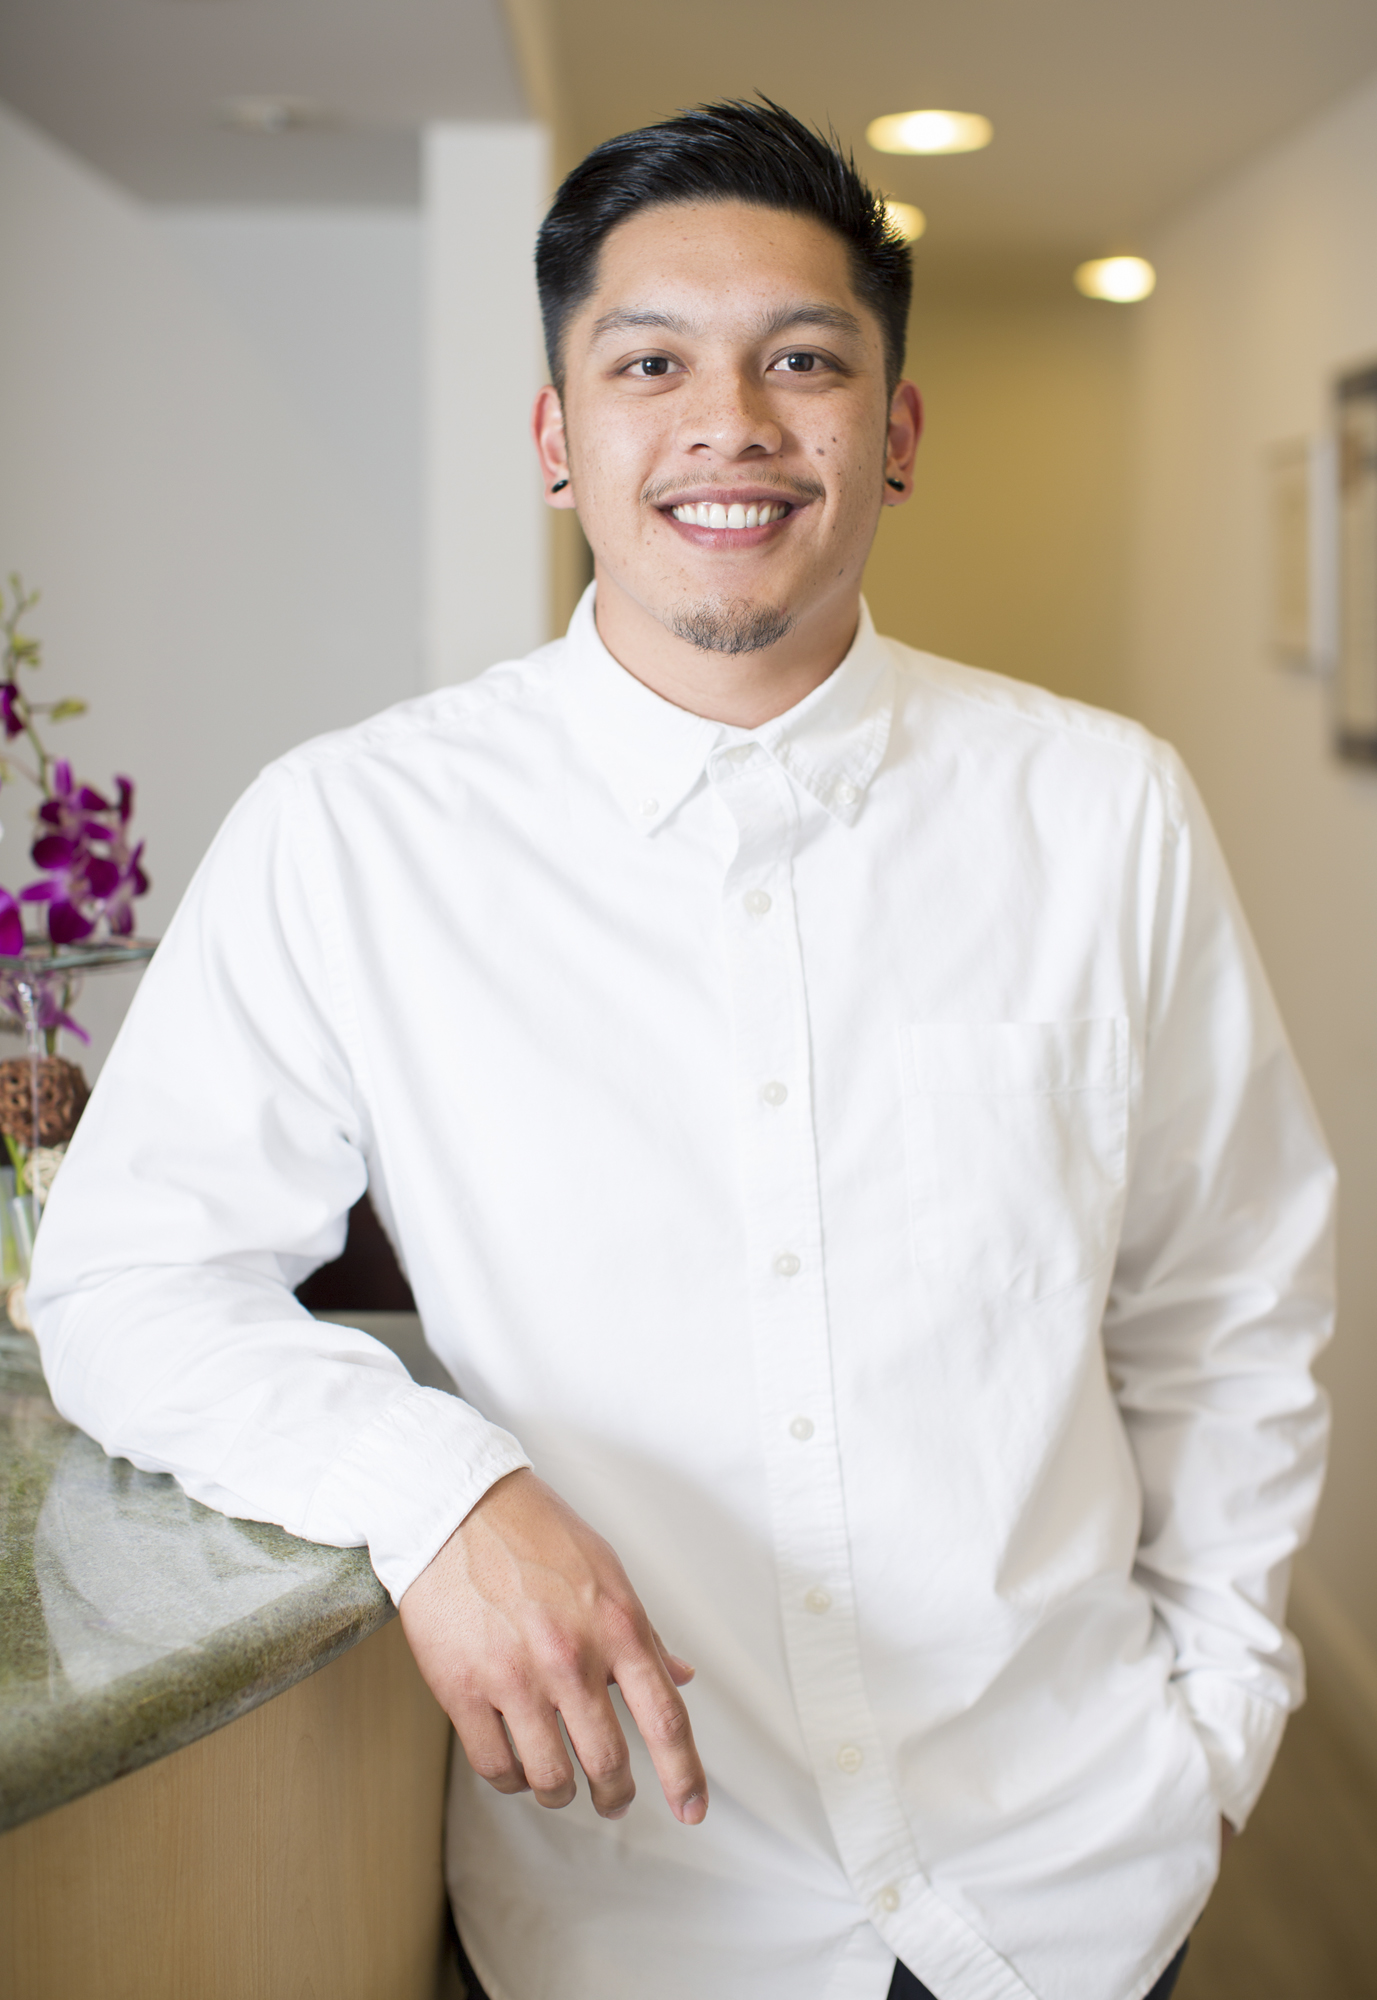 Mark Yanga, Registered Dental Assistant and Extended Functions at Nice Teeth Dental in San Leandro, California.